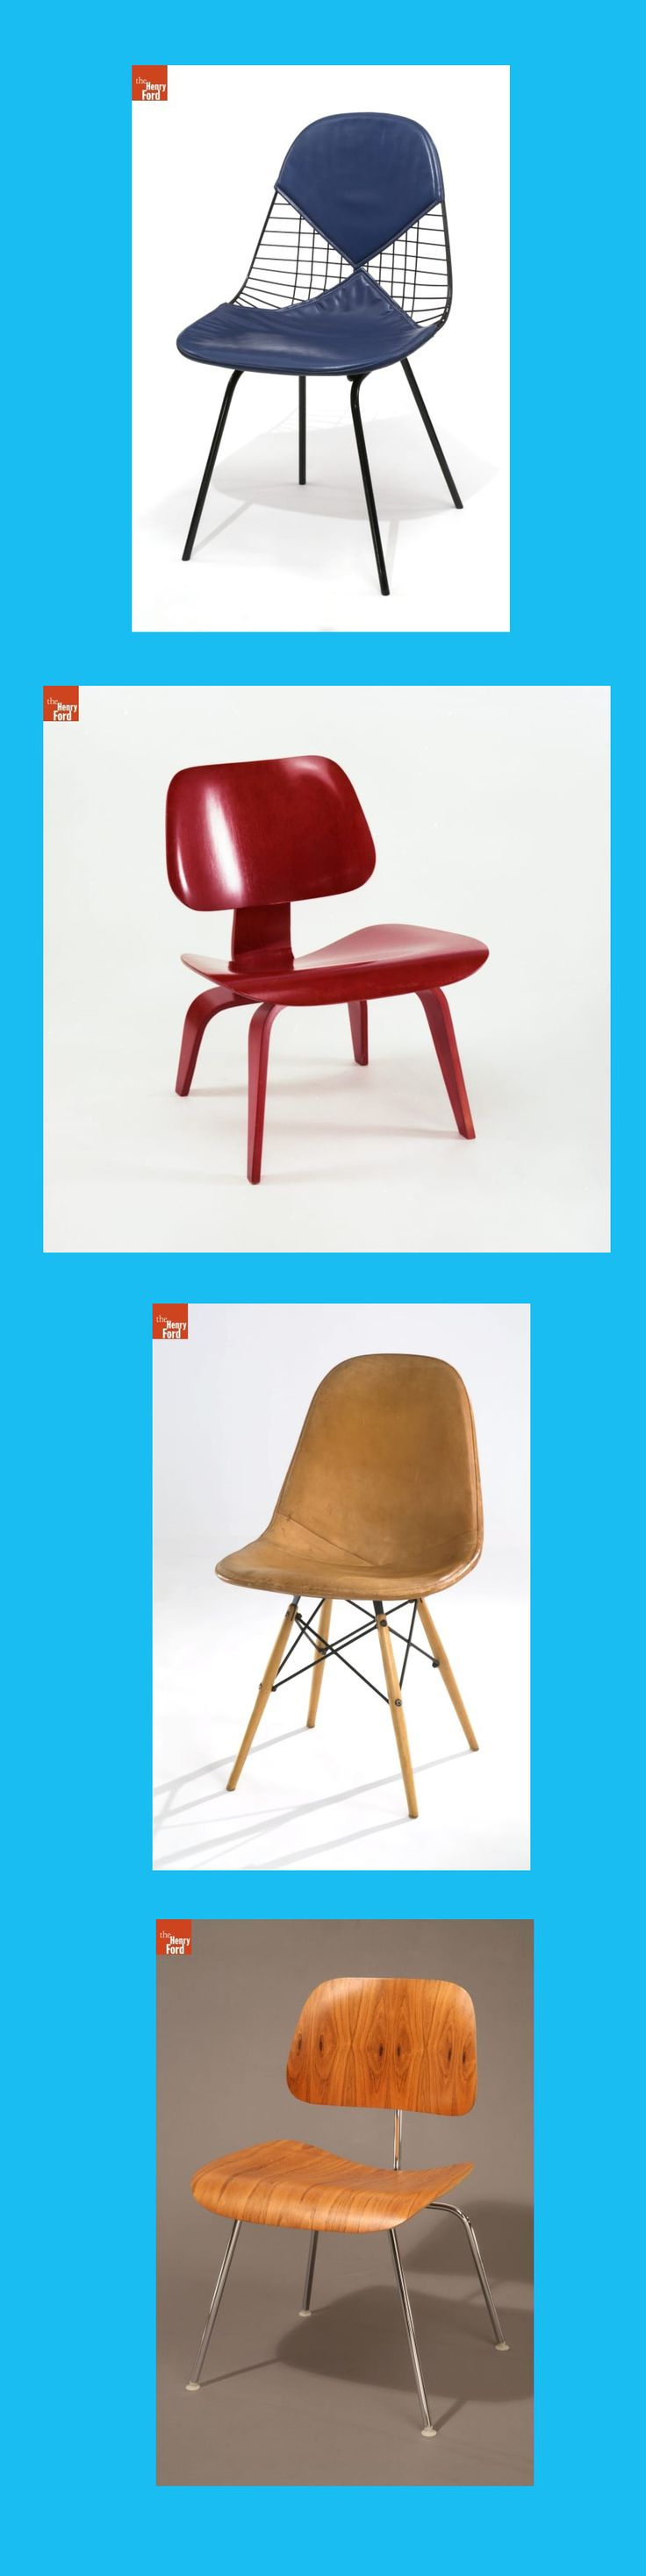 Eames designs in the permanent collection of THE HENRY FORD where you can now see